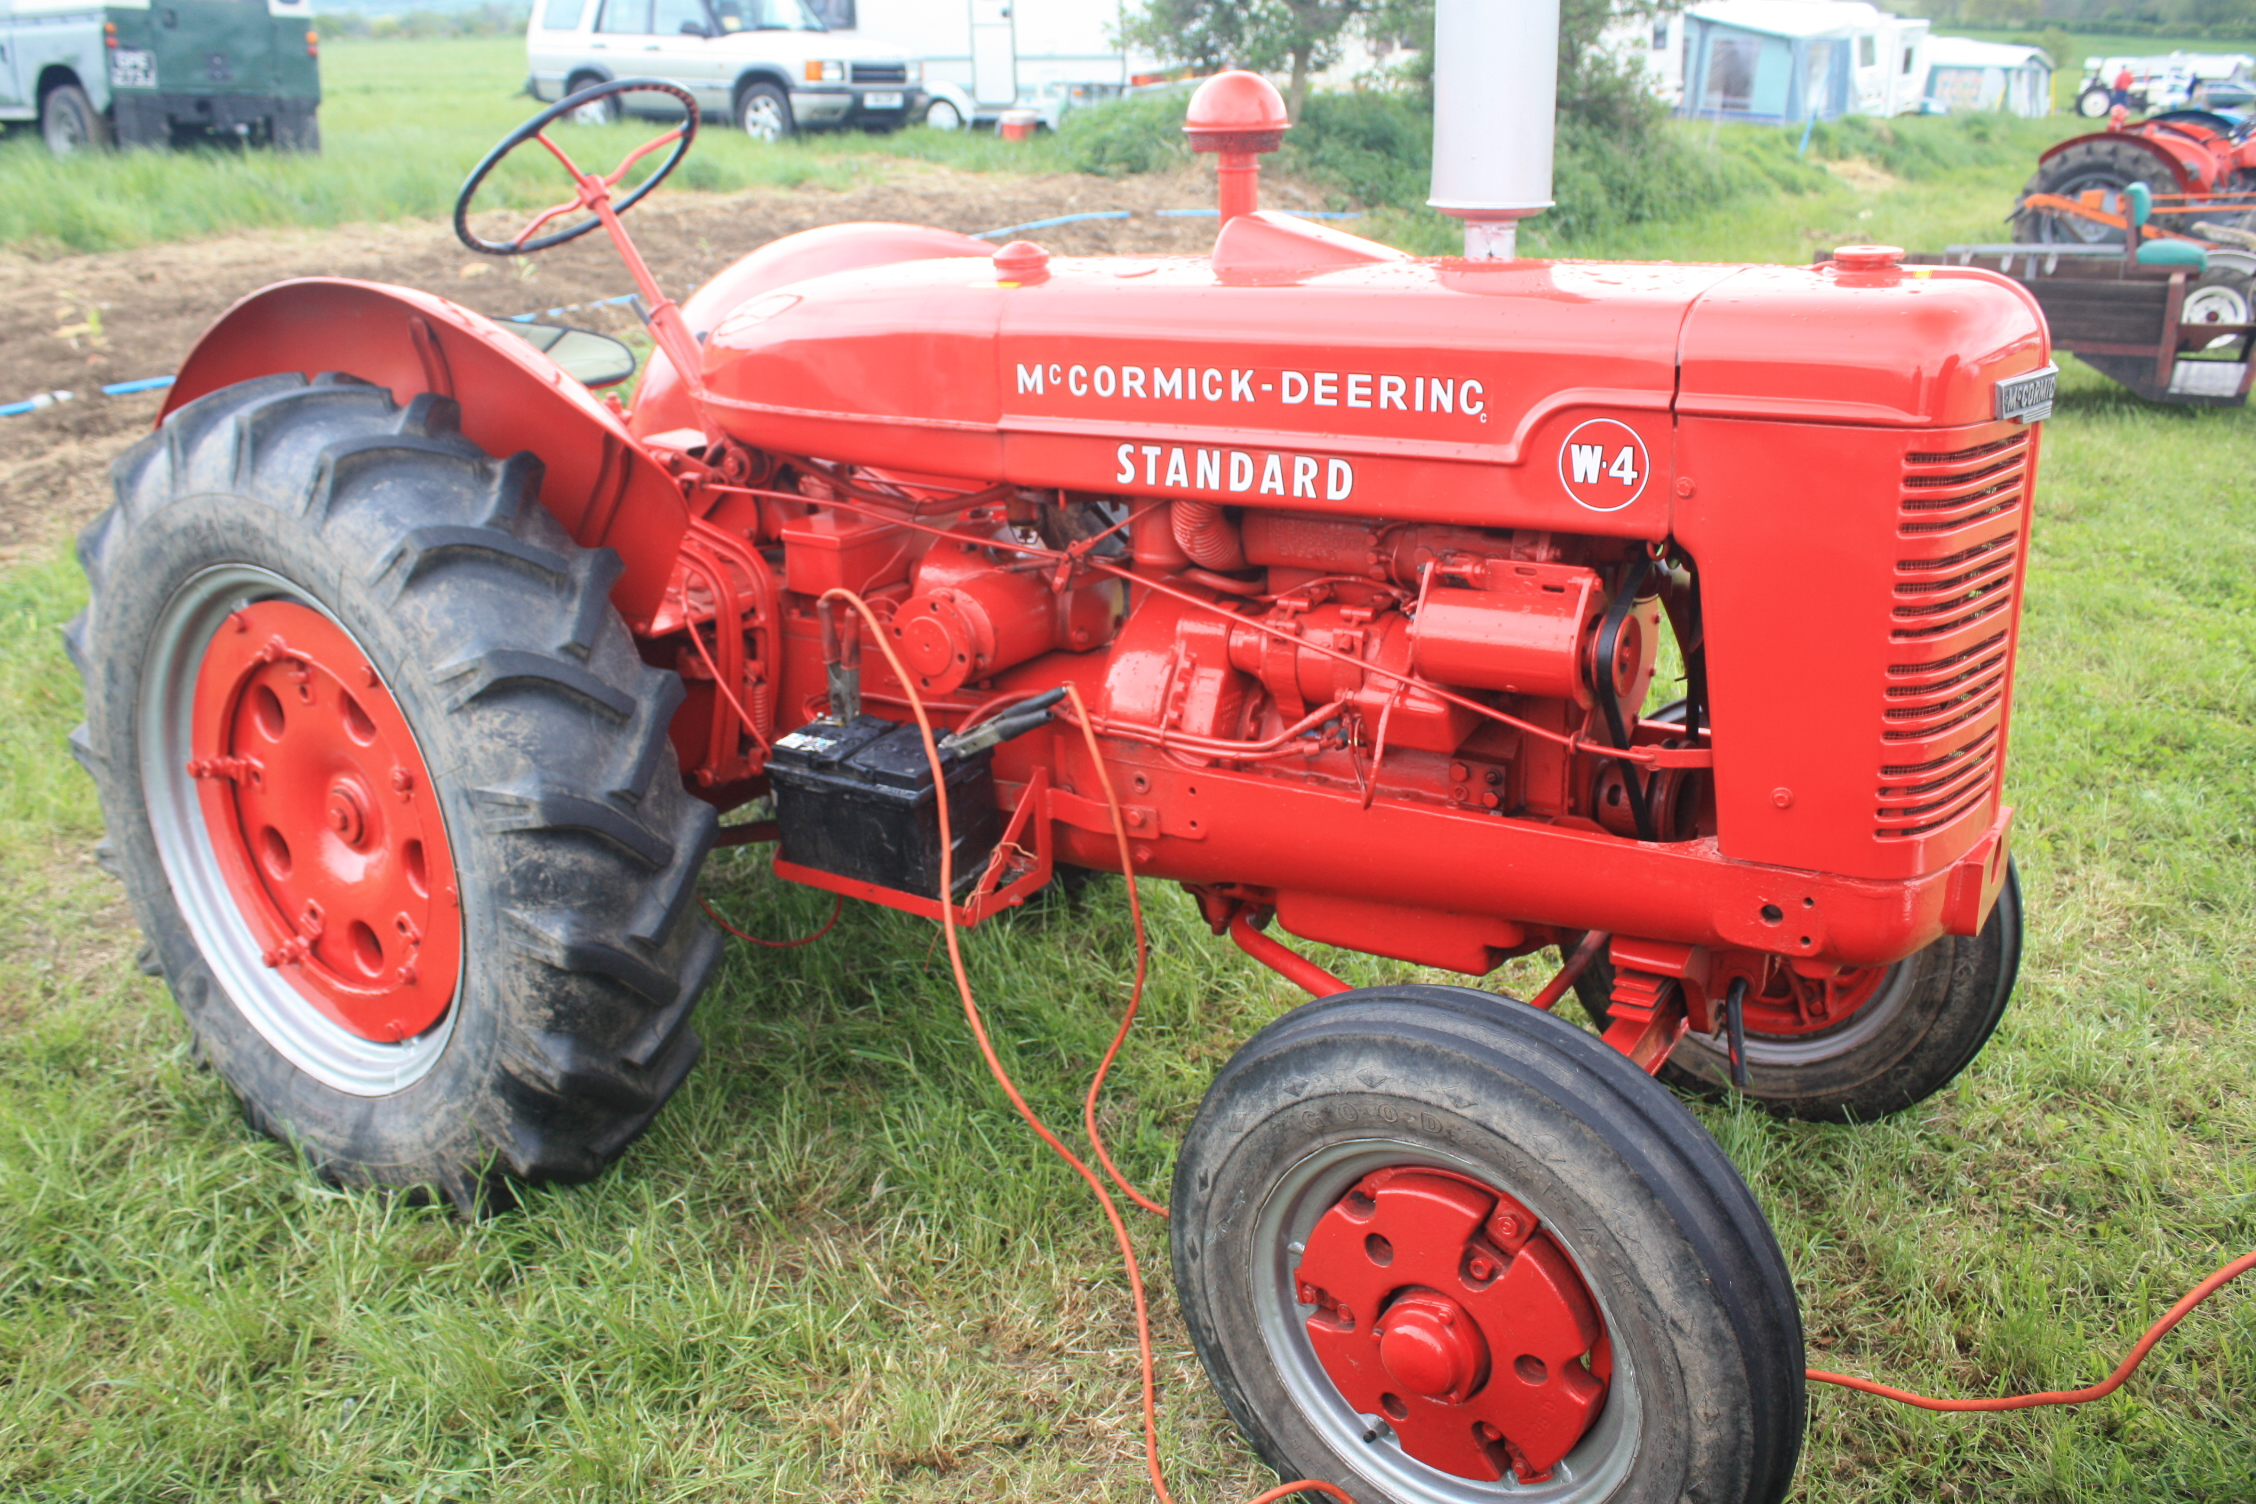 1945 Farmall H Engine Diagram Starting Know About Wiring Md Mccormick Deering W 4 Tractor Construction Plant Wiki Fandom Rh Tractors Wikia Com